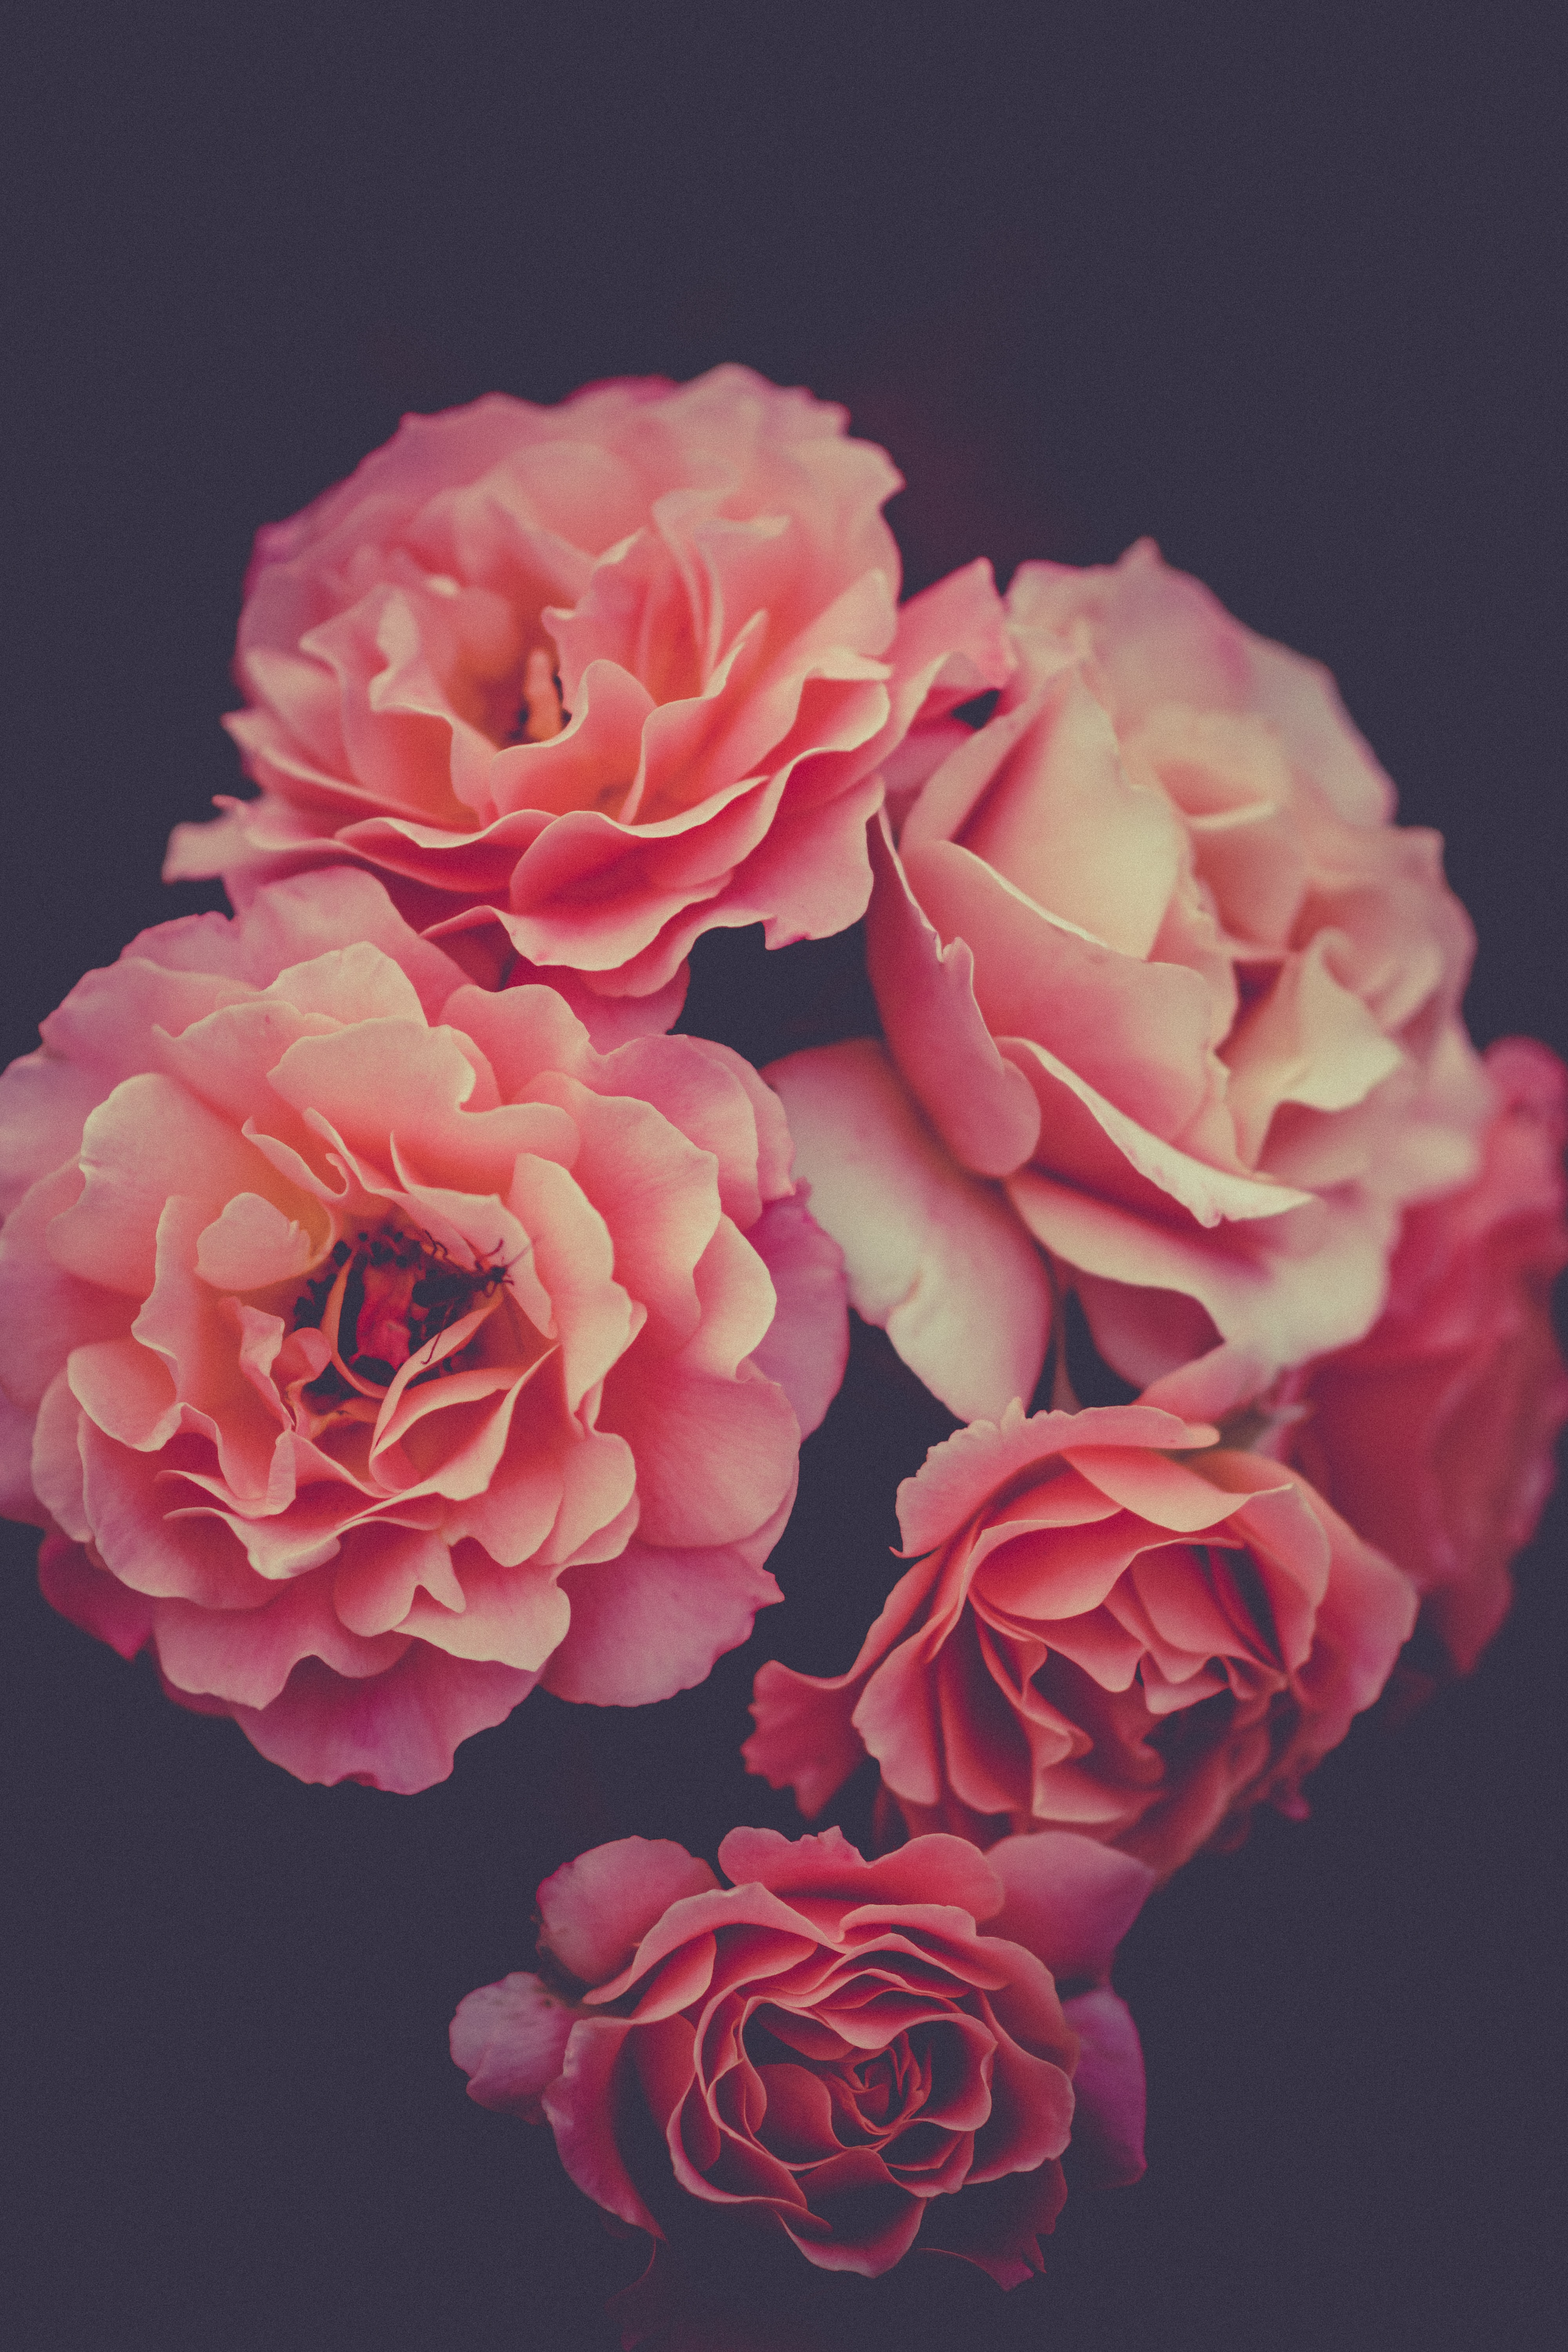 Floral Bouquet Of Fresh Pink Roses From The Flower Garden